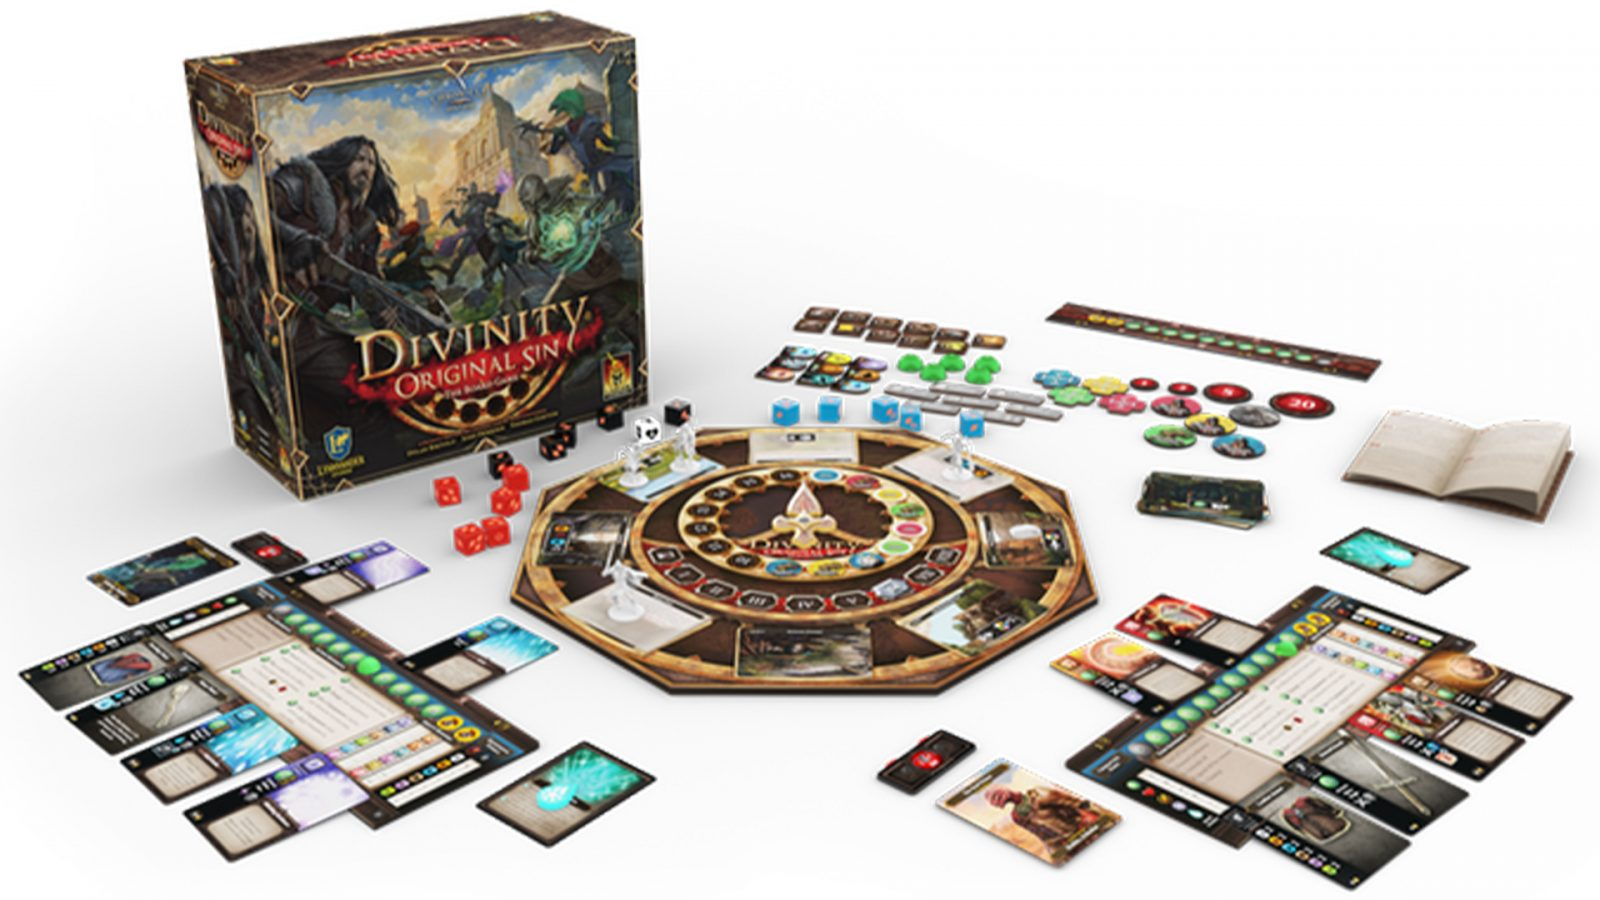 Divinity: Original Sin board game hits Kickstarter, gets funded in four hours